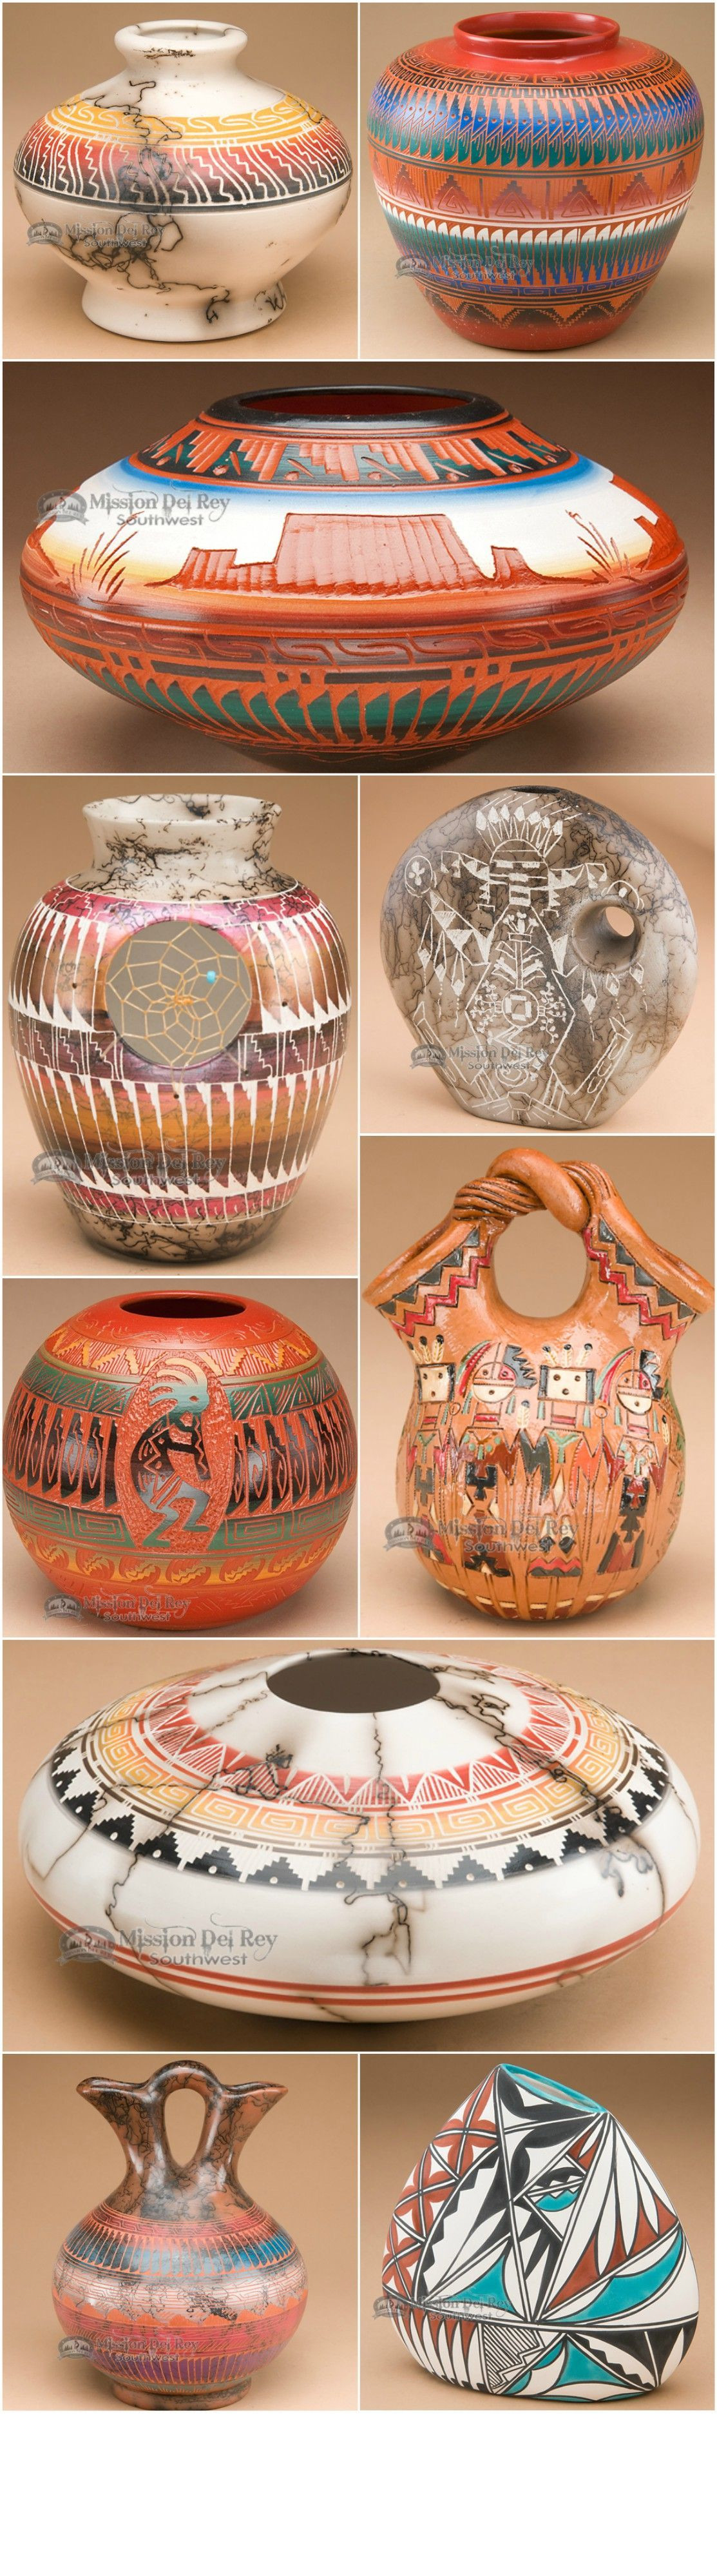 japanese vases for sale of 26 vase market coupon the weekly world with american indian pottery is very popular among collectors of